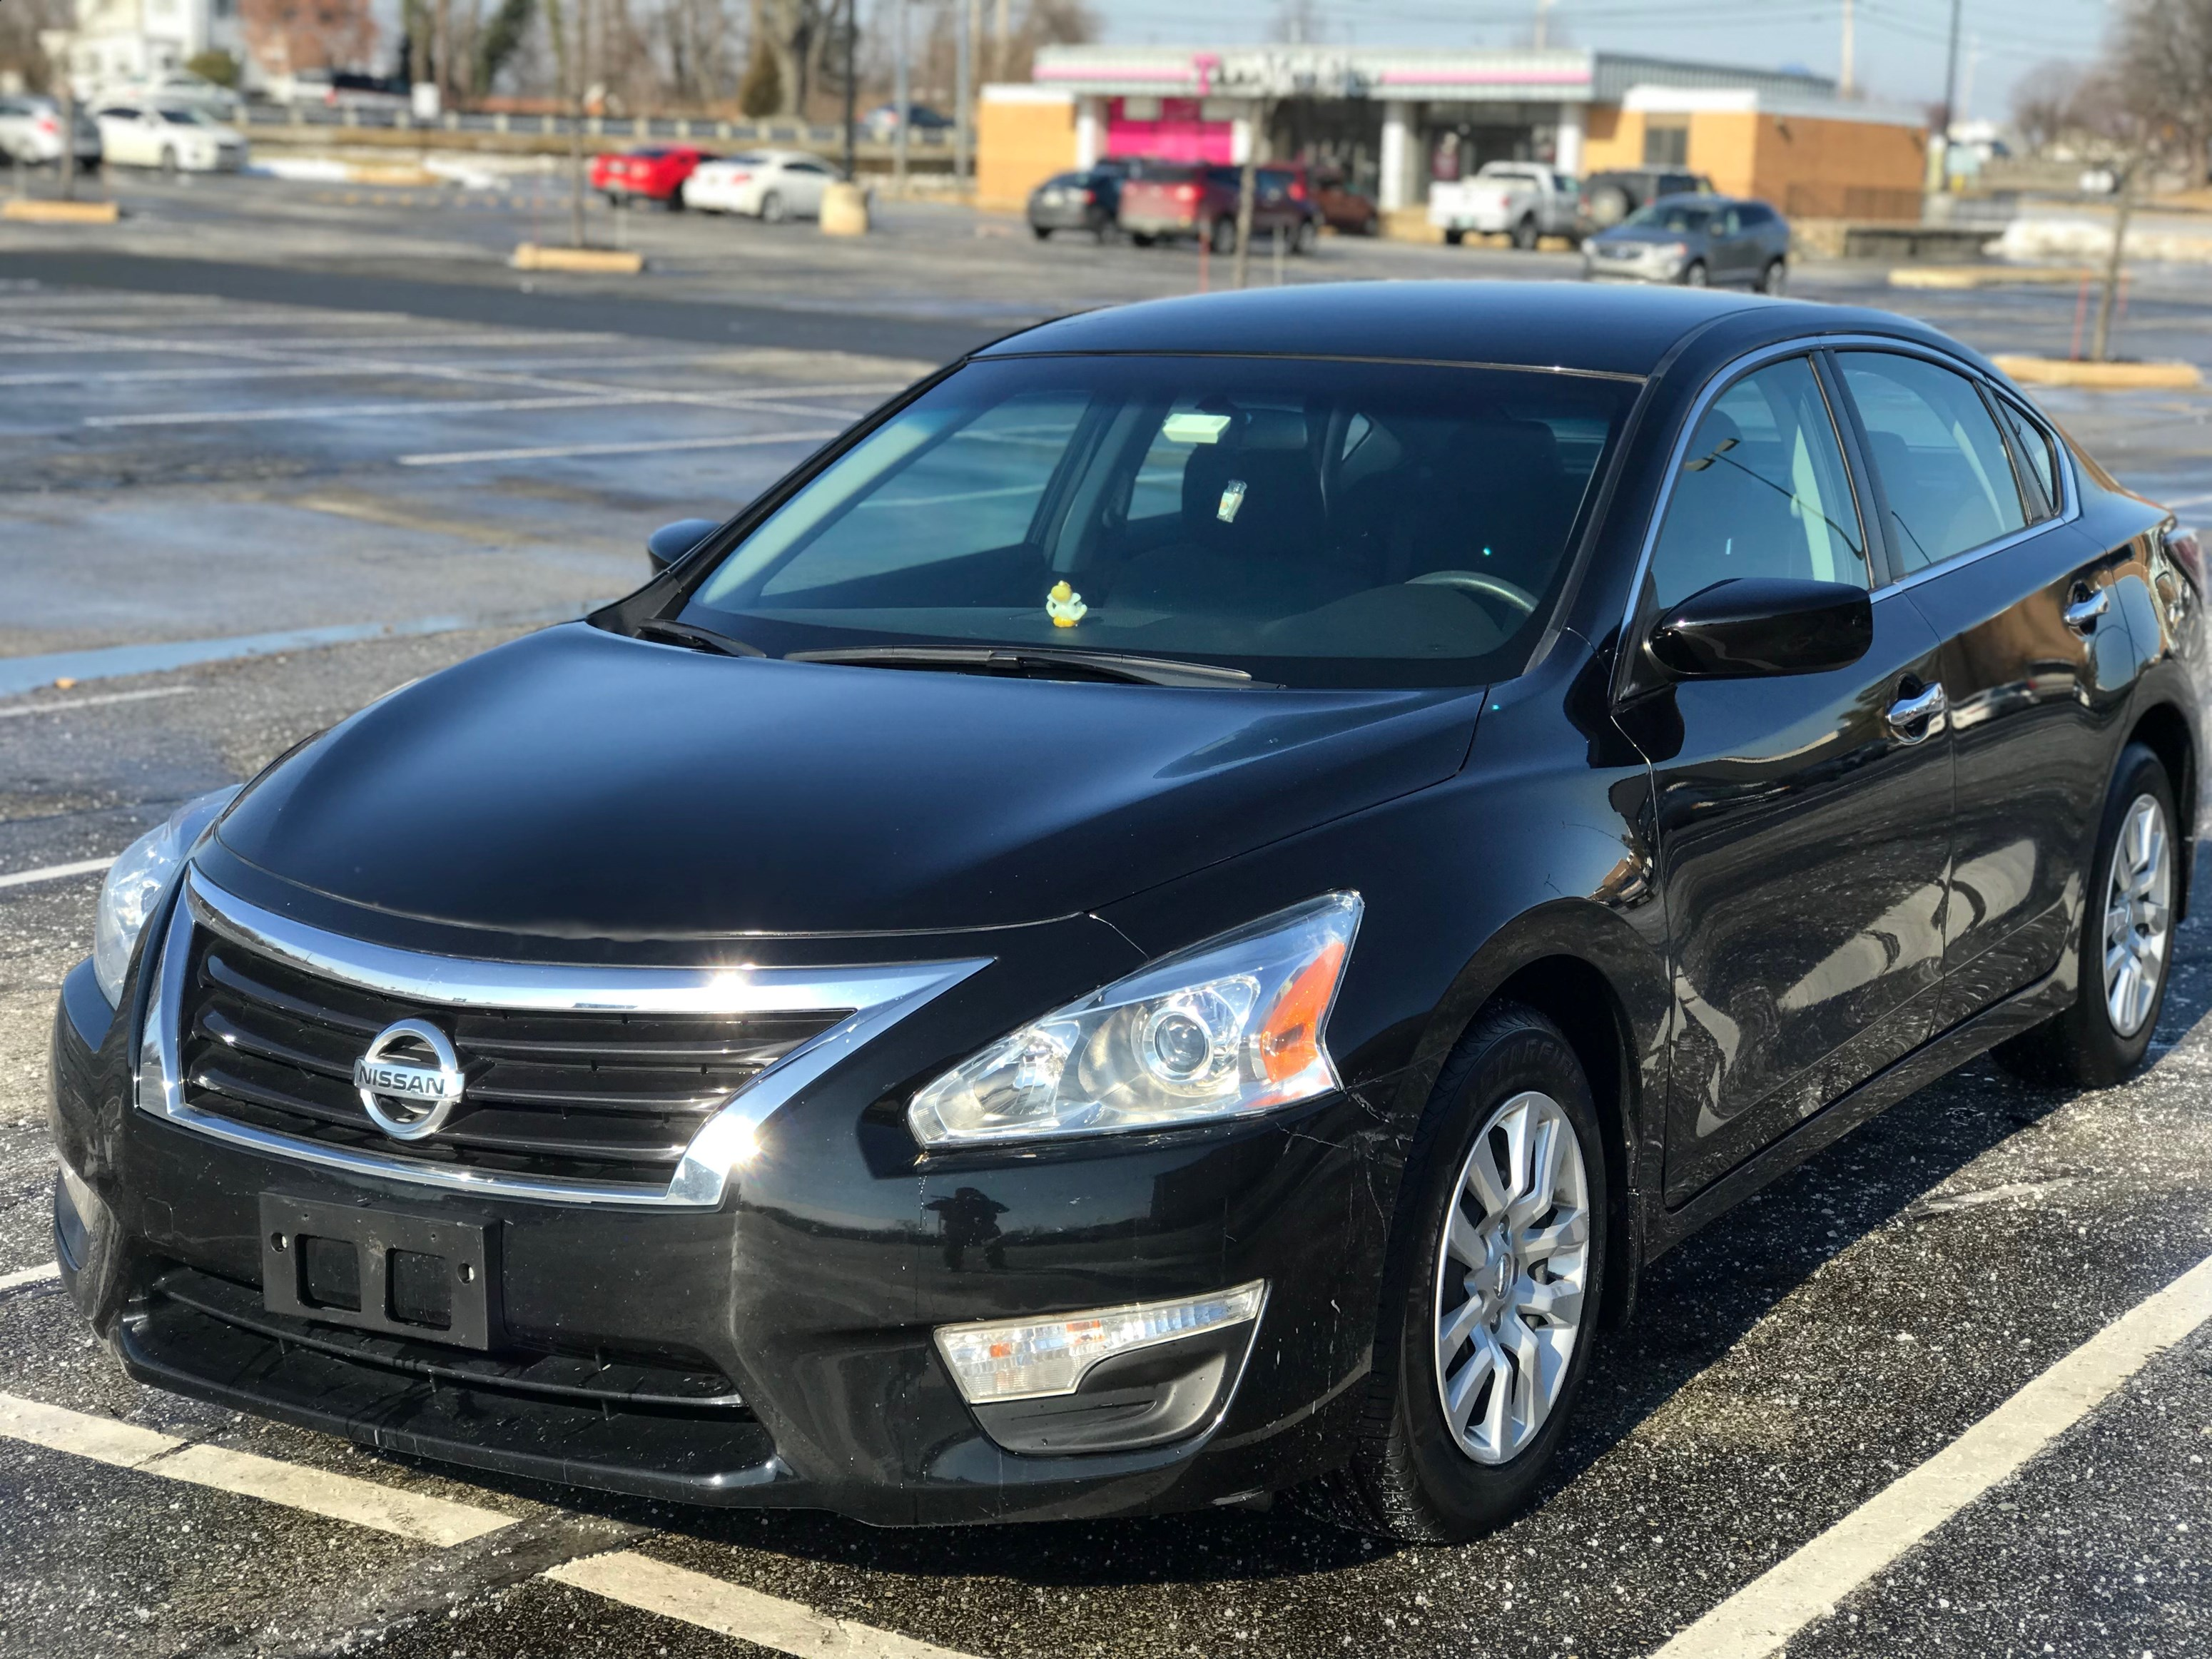 pay dfw buy autotrader nissan roof mart com arlington dealers worth car sale for here fort buyherepayheredfwcarmart white sun with pearl panoramic texas maxima tx